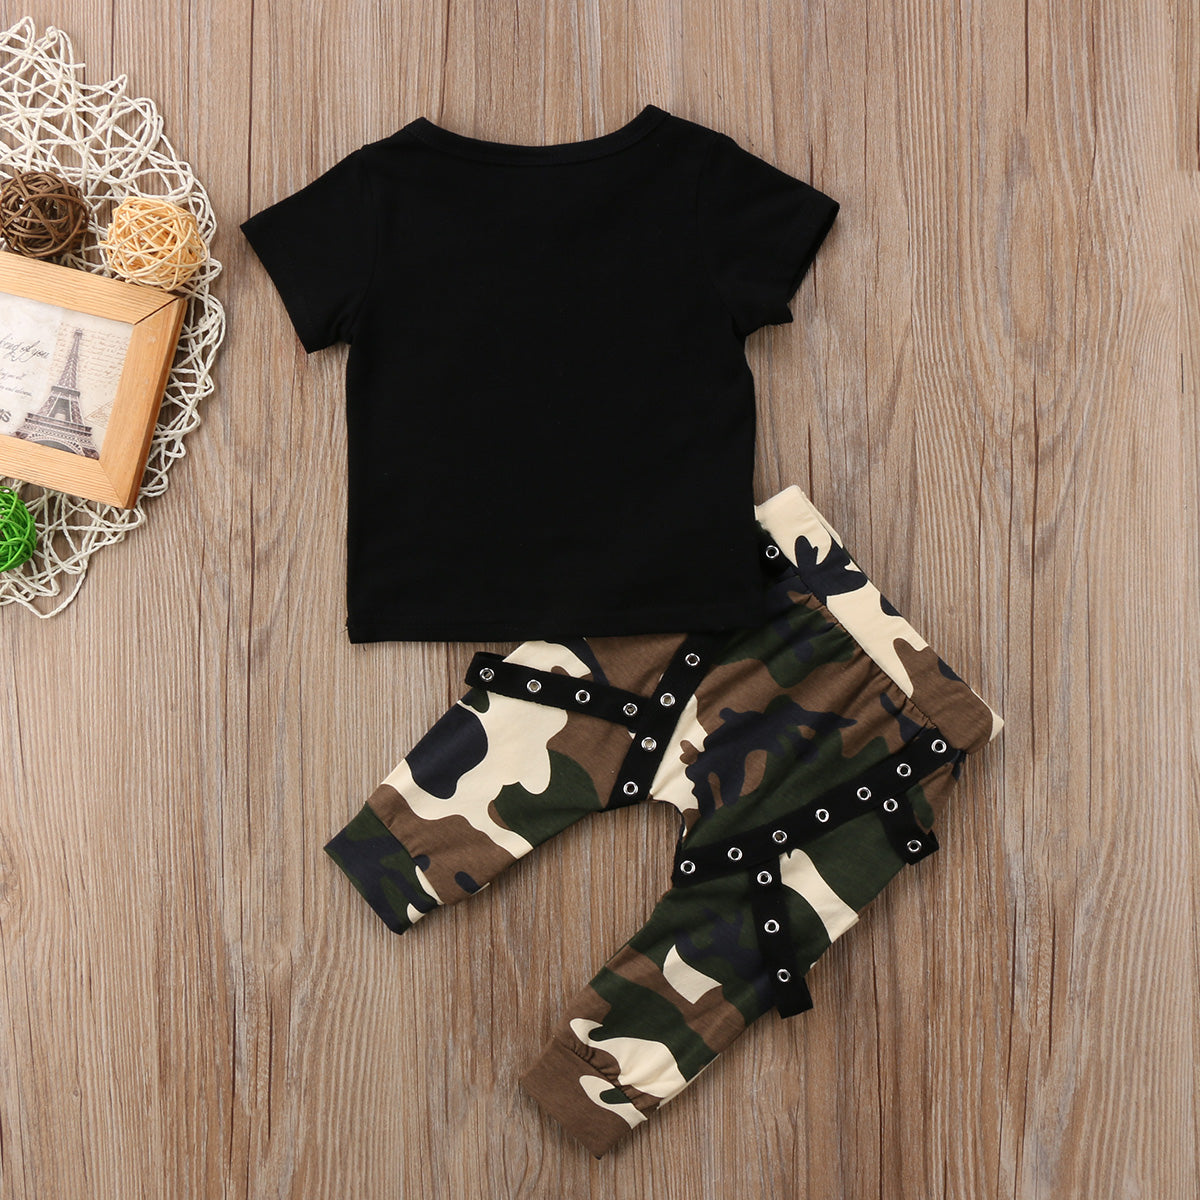 Baby Boys Clothing Short Sleeve Tops Crown T-shirt Camo Pants Outfits